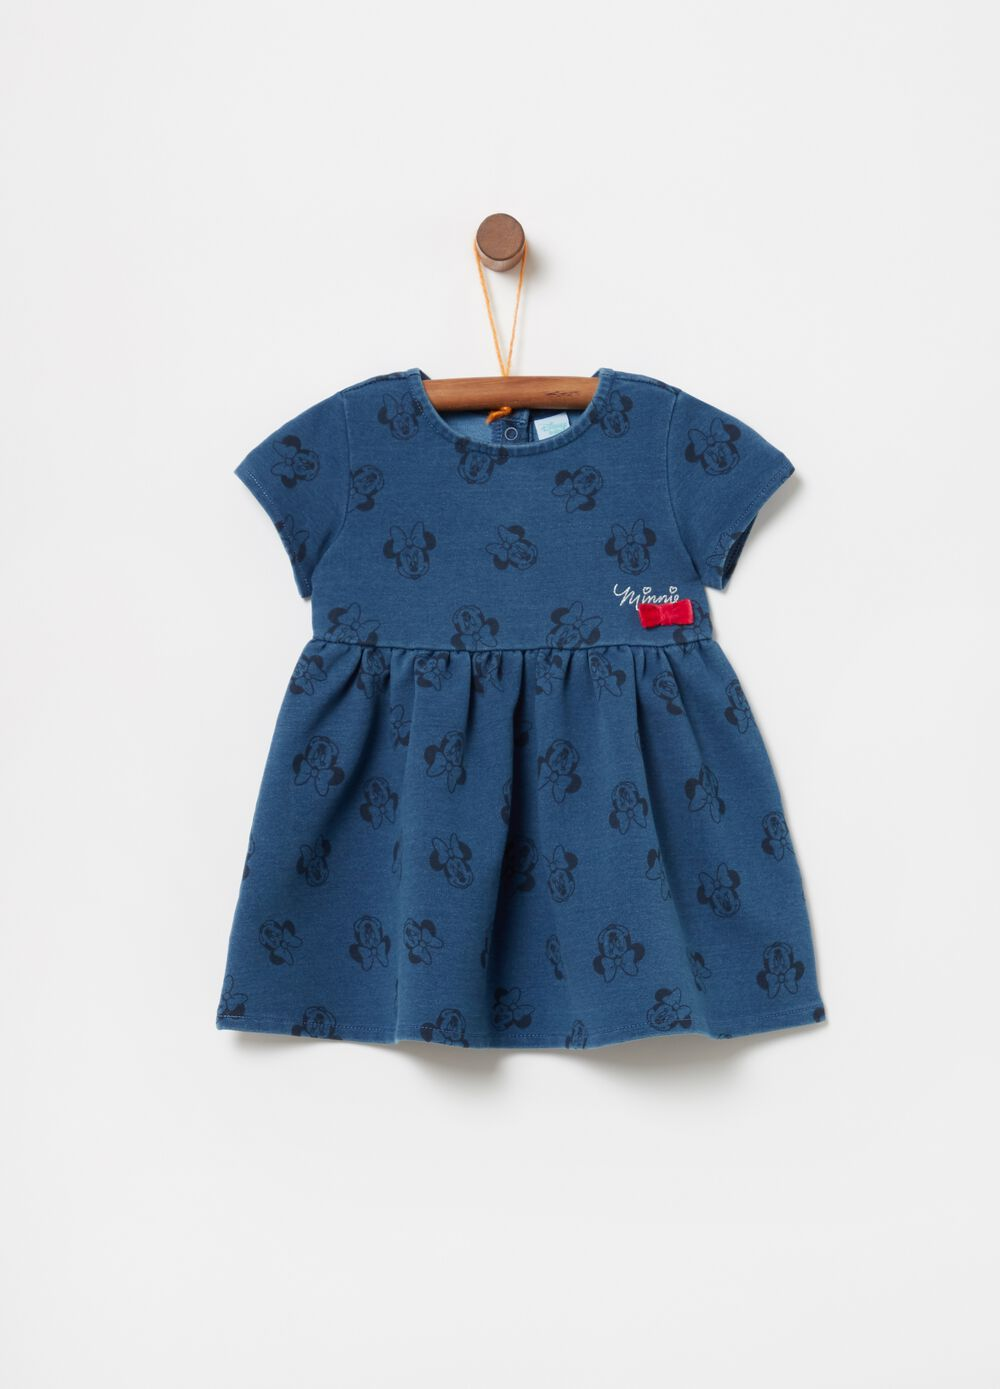 Denim dress with Disney Minnie Mouse pattern